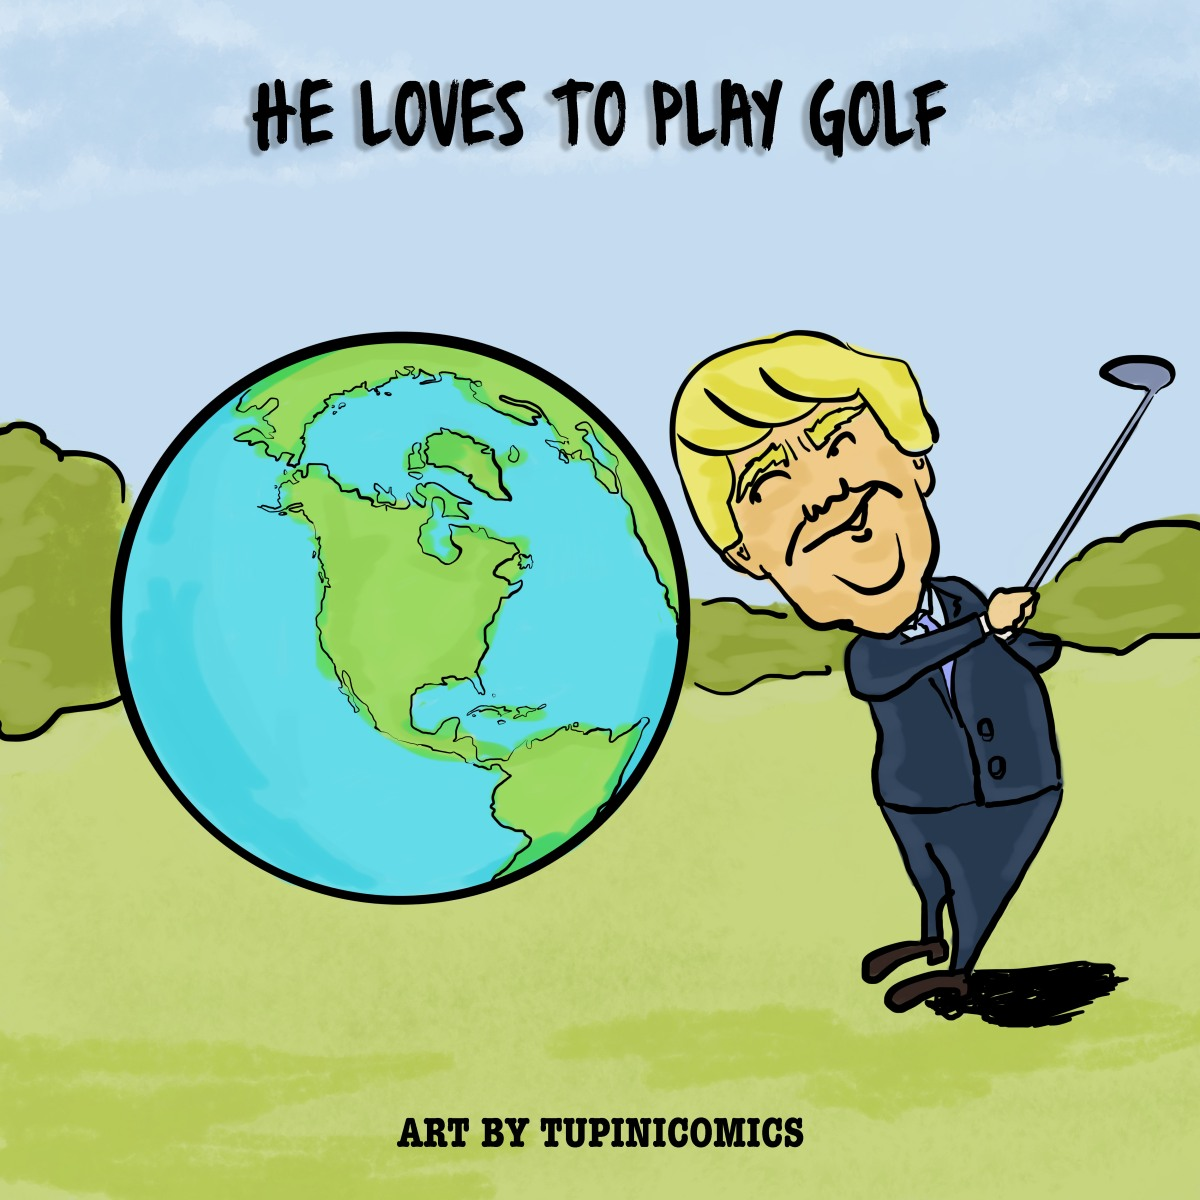 He loves to playgolf